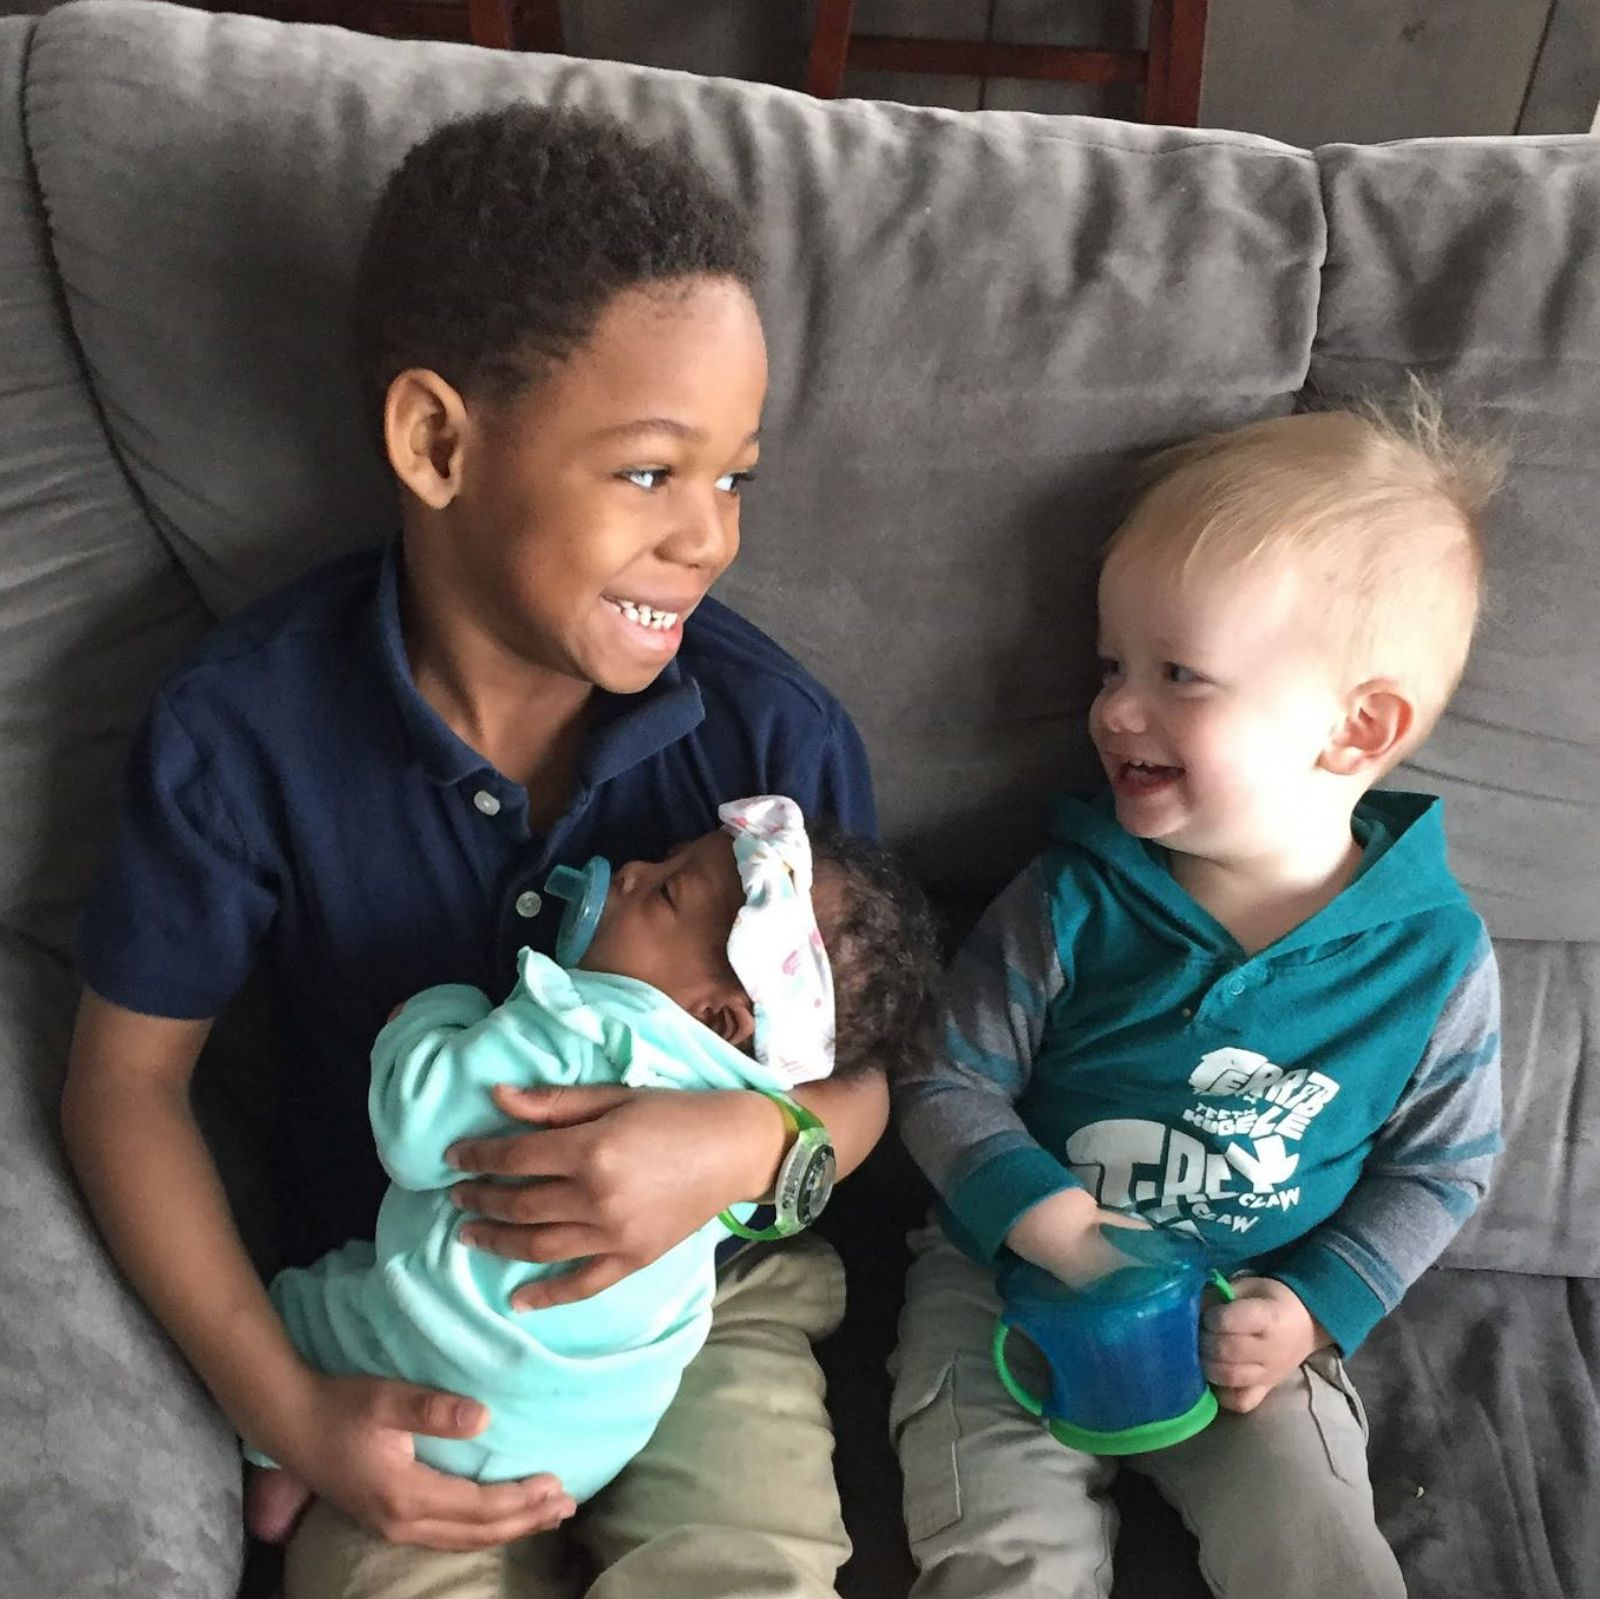 Couple learns adopted son's birth mom is pregnant with a baby girl